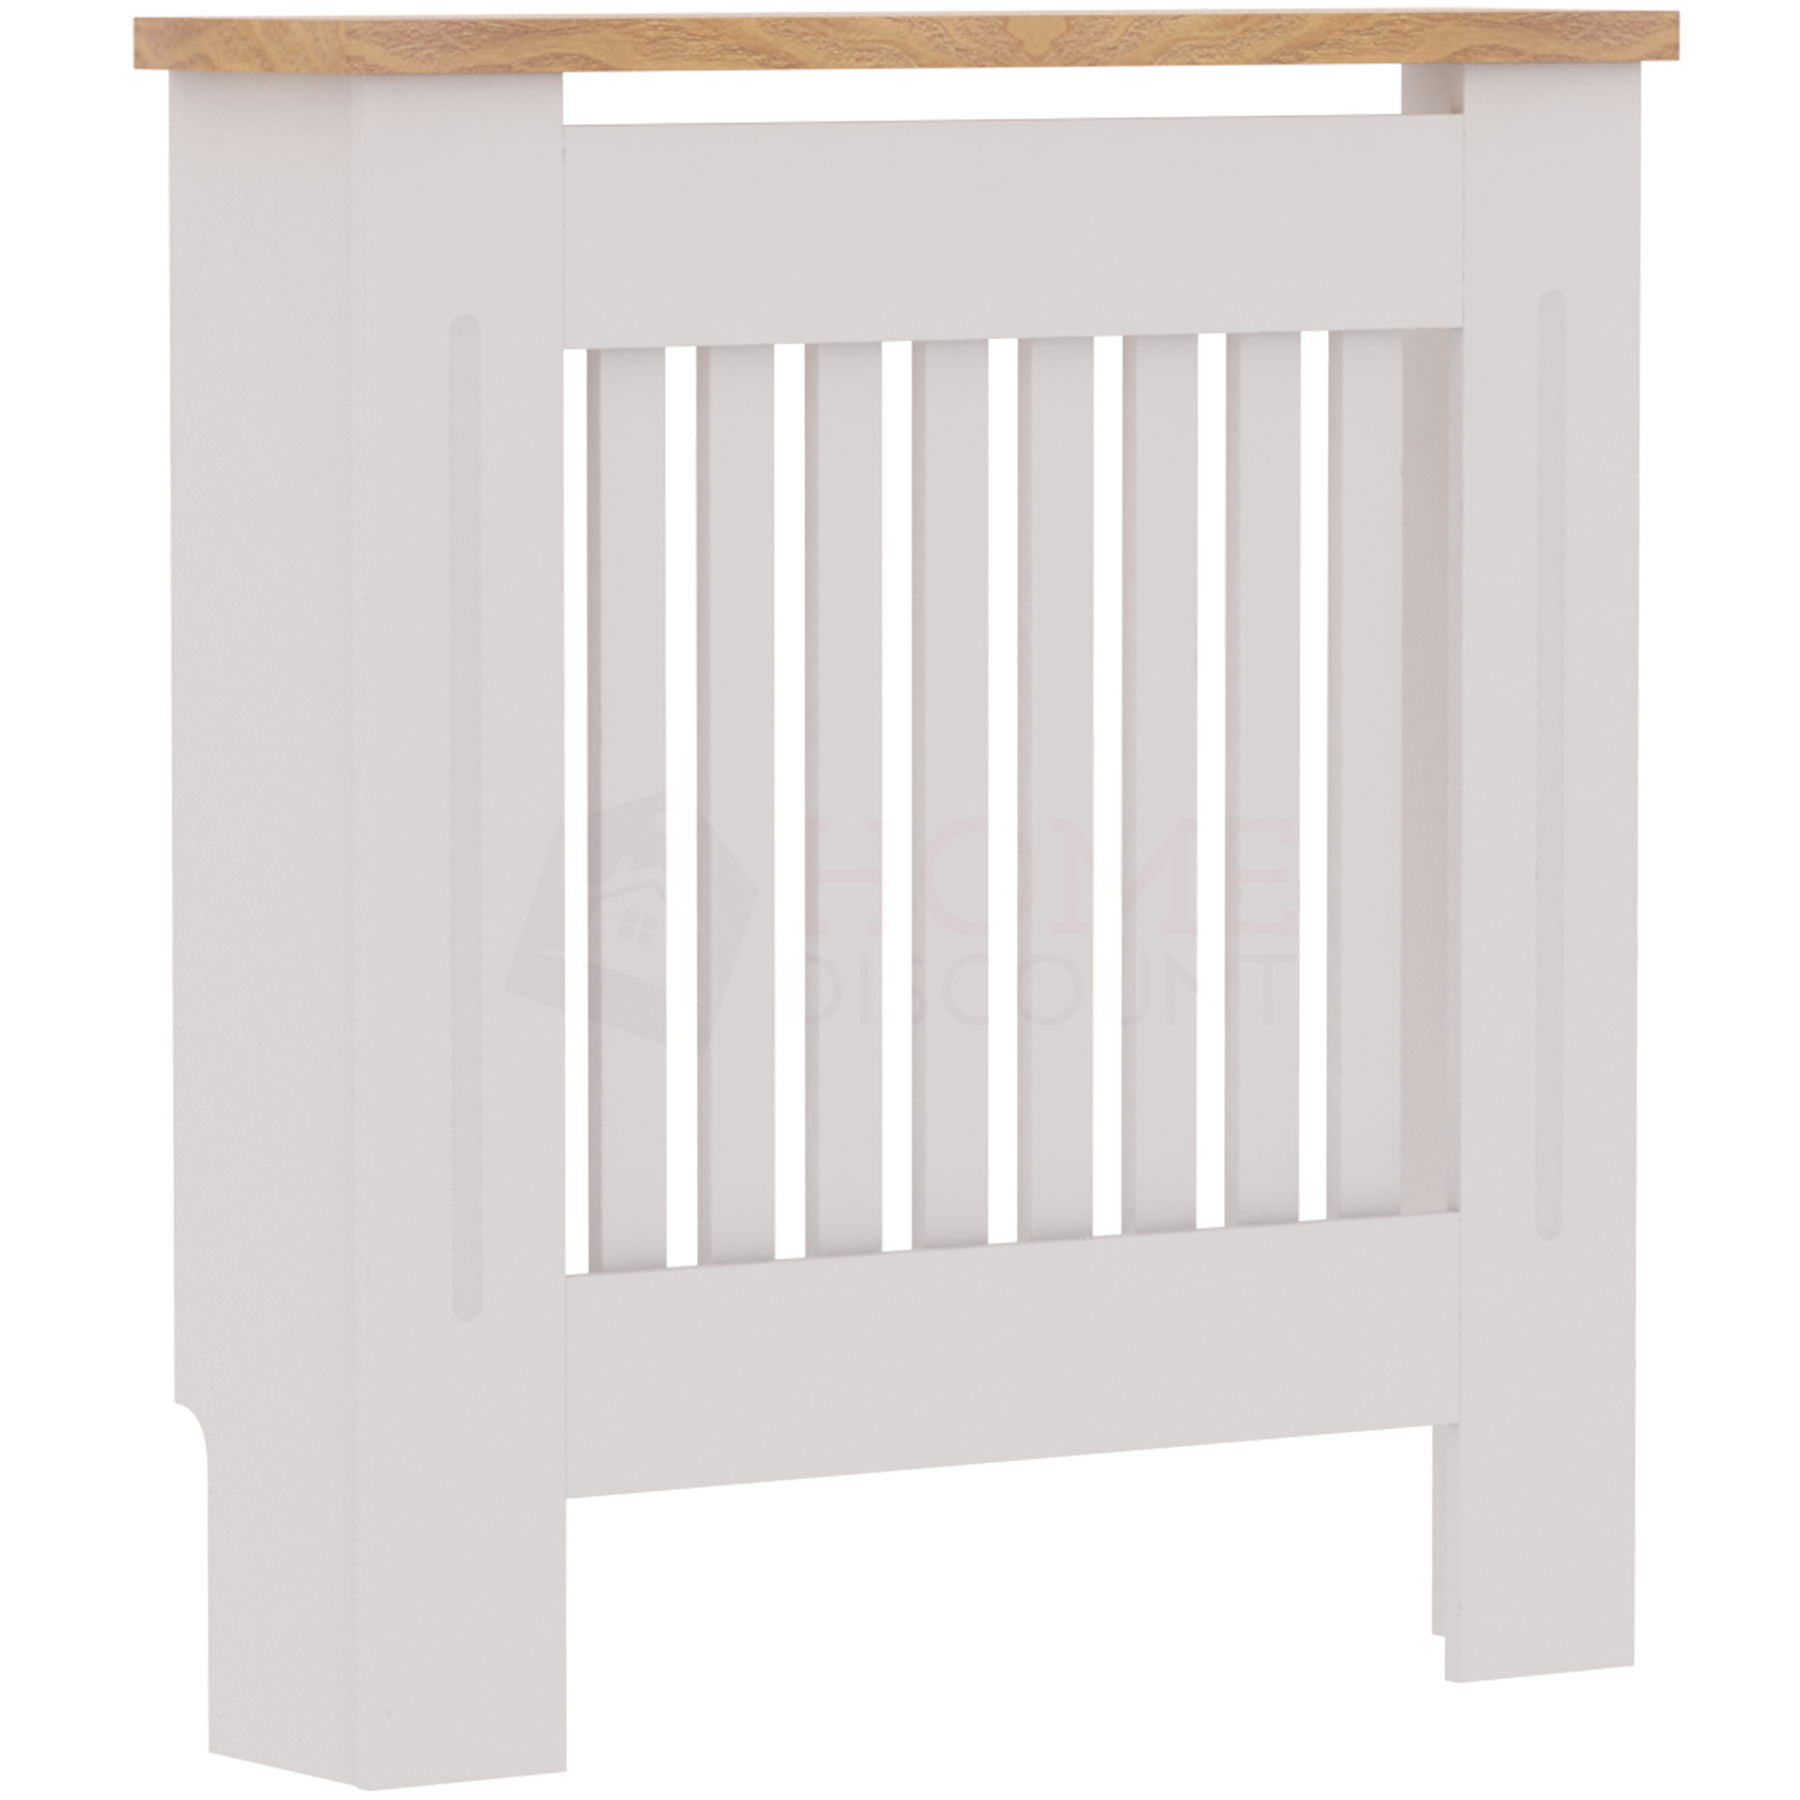 thumbnail 9 - Radiator Cover White Unfinished Modern Traditional Wood Grill Cabinet Furniture